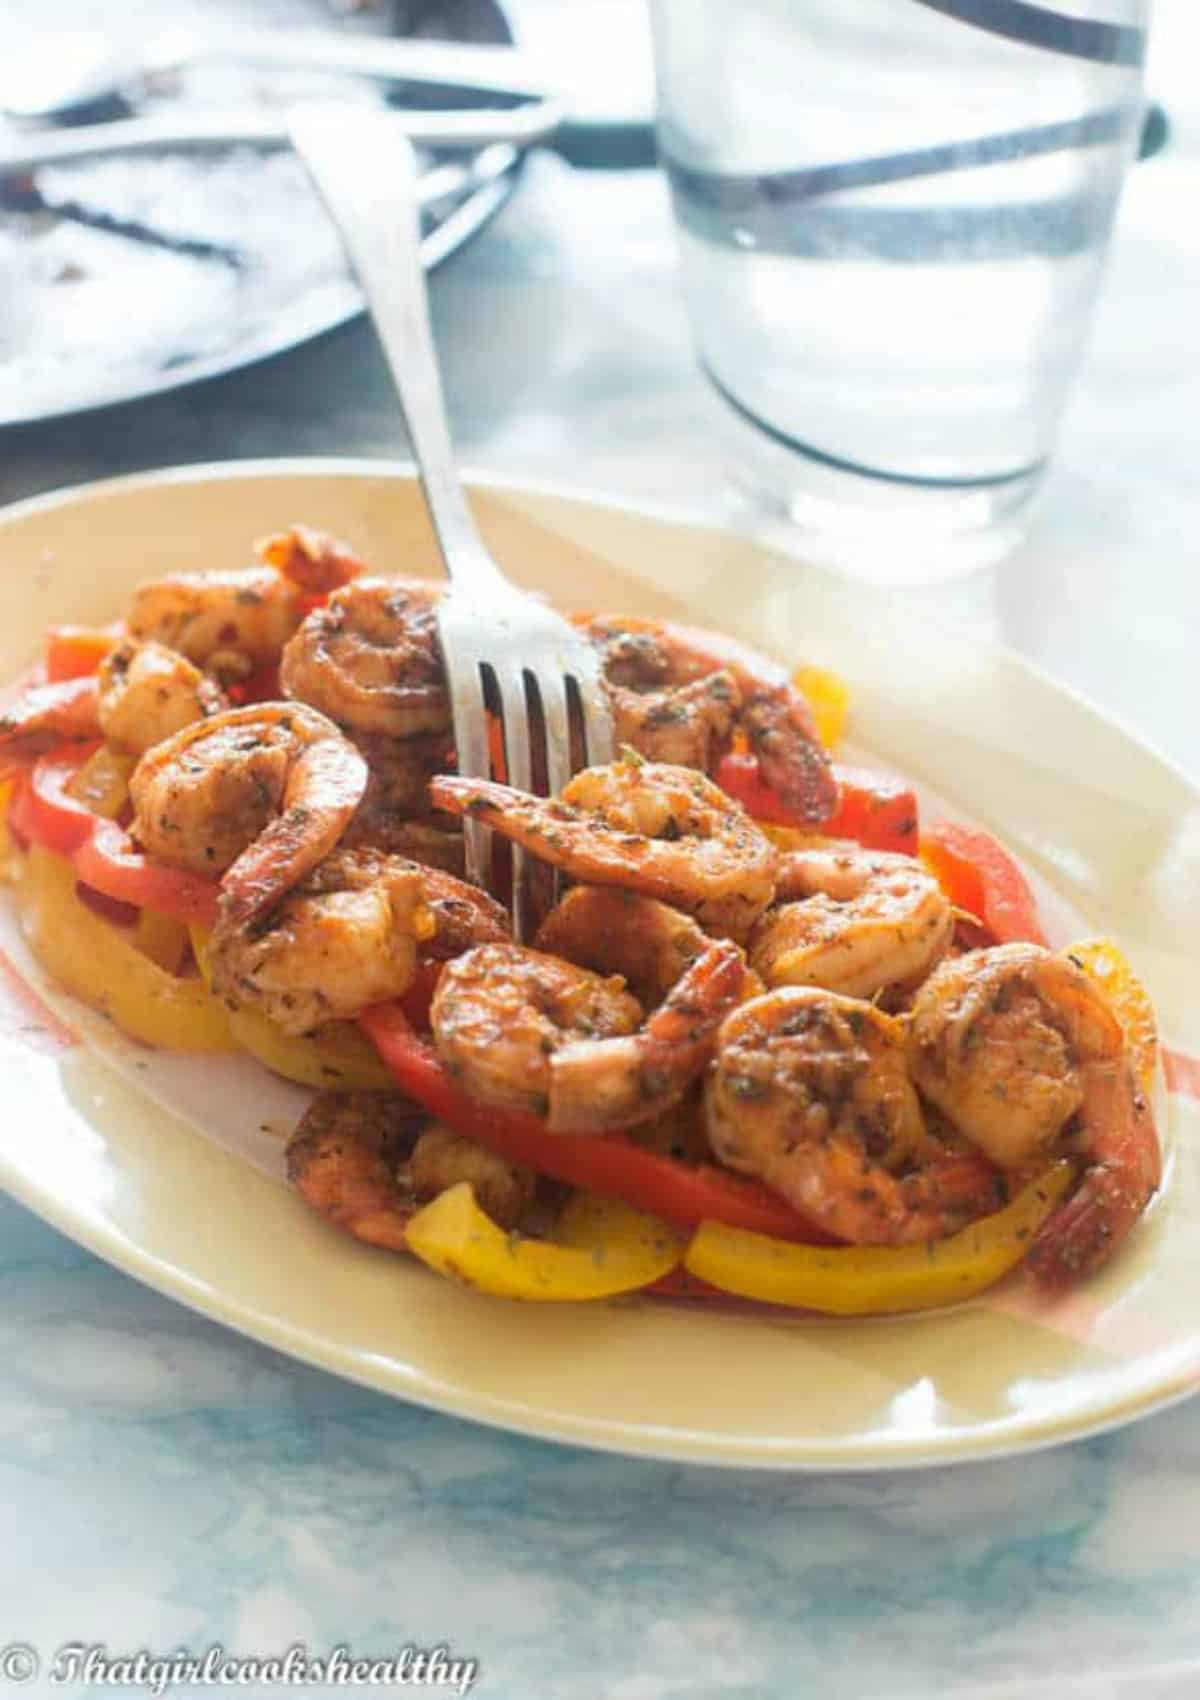 shrimp on a plate with water